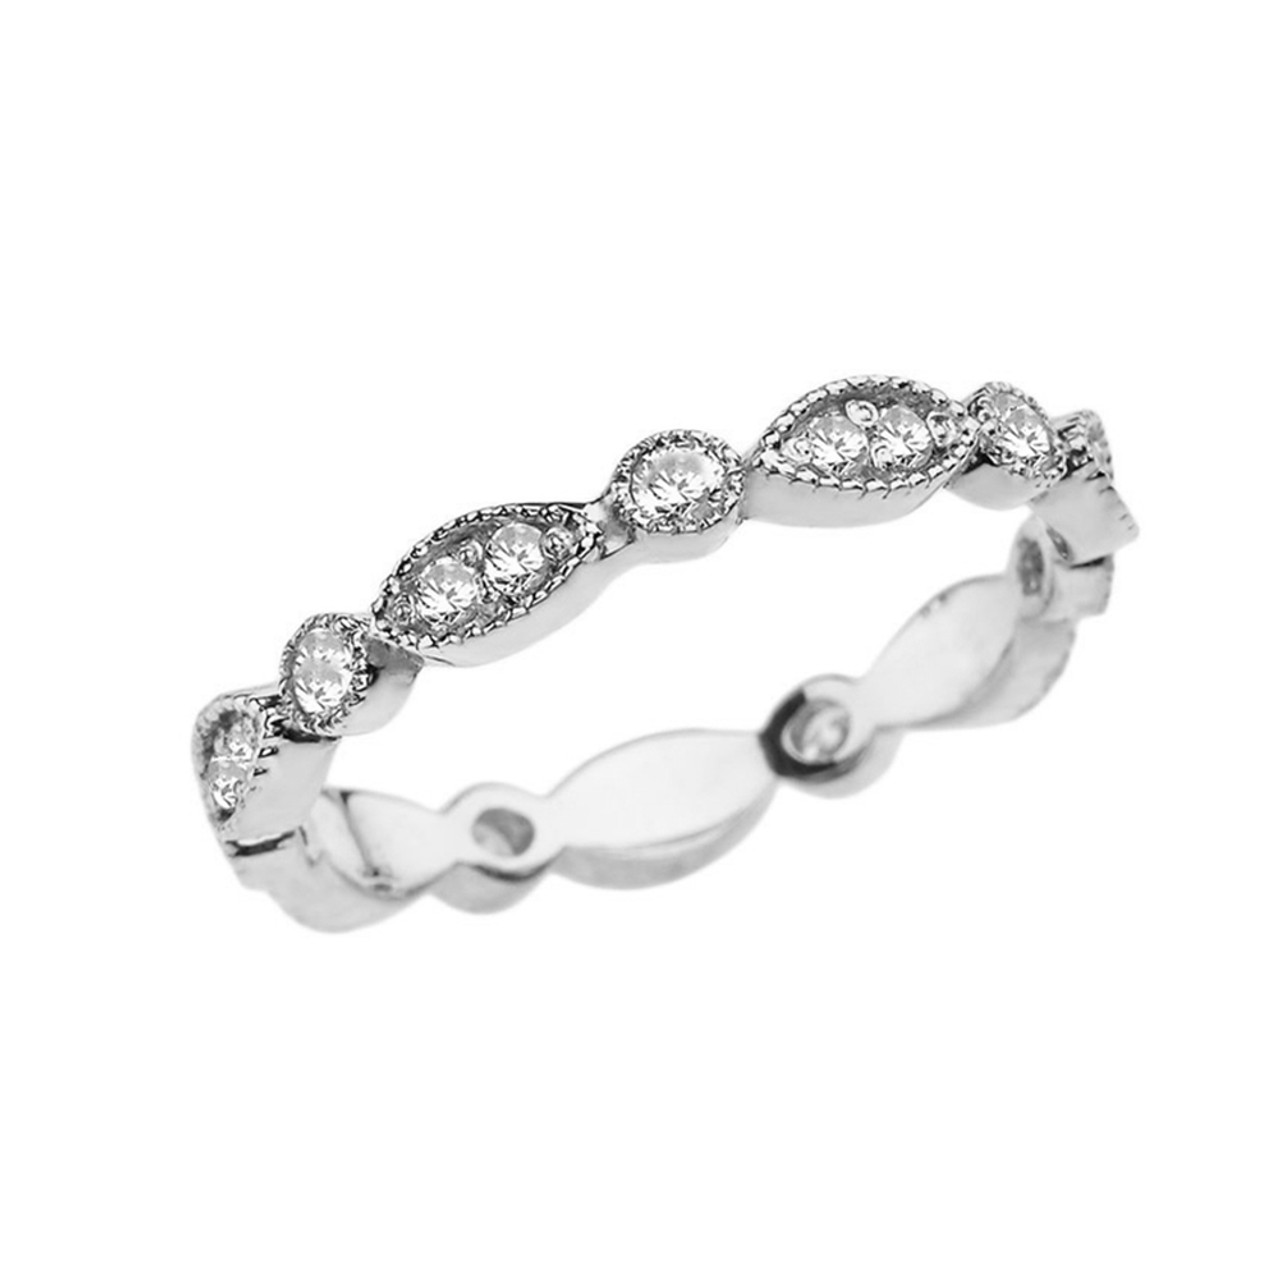 This is a picture of White Gold Fancy Anniversary/Engagement Eternity Band With Cubic Zirconia